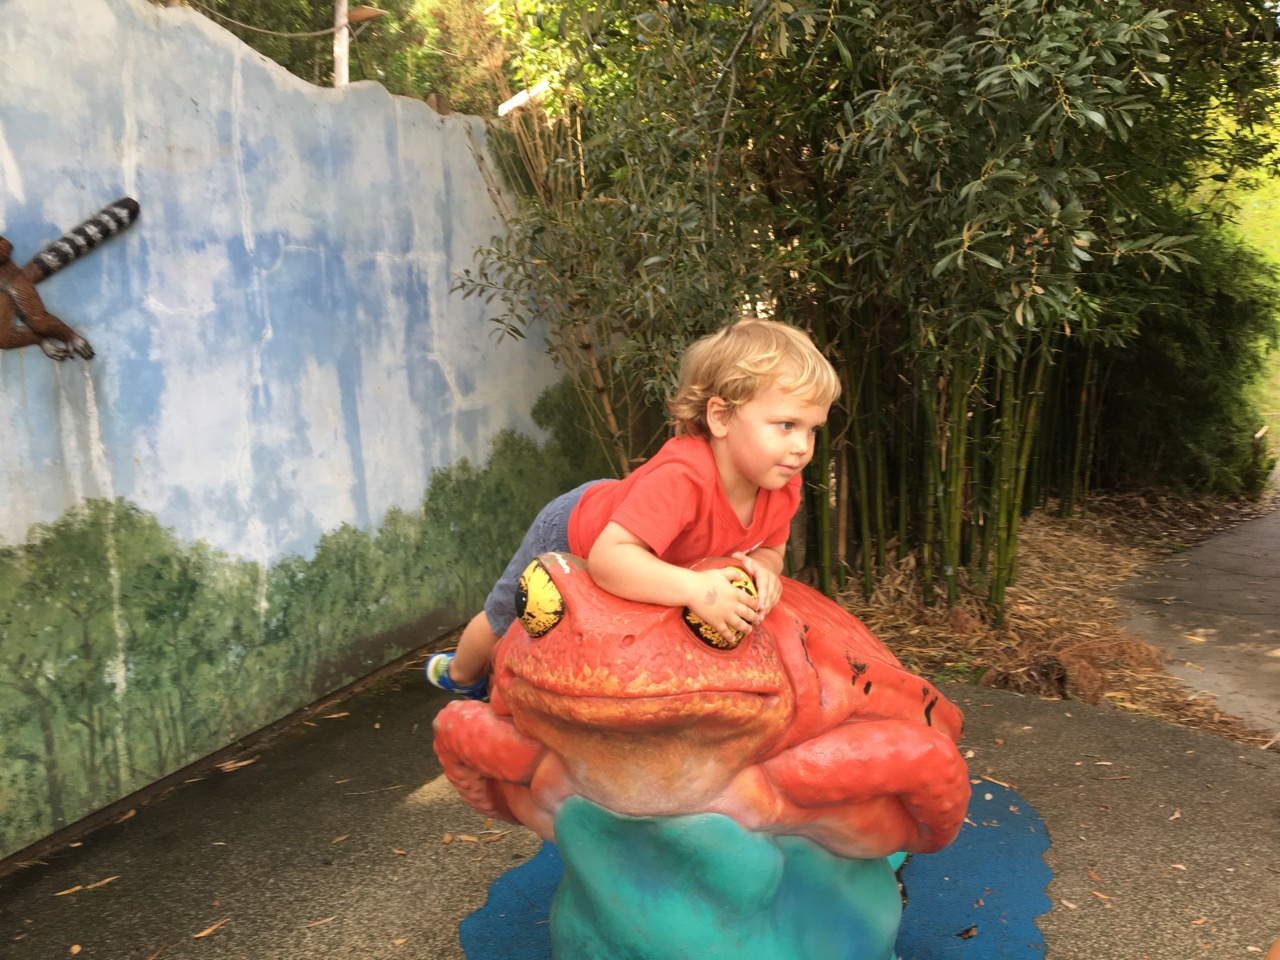 W37: Climbing the frog at the zoo